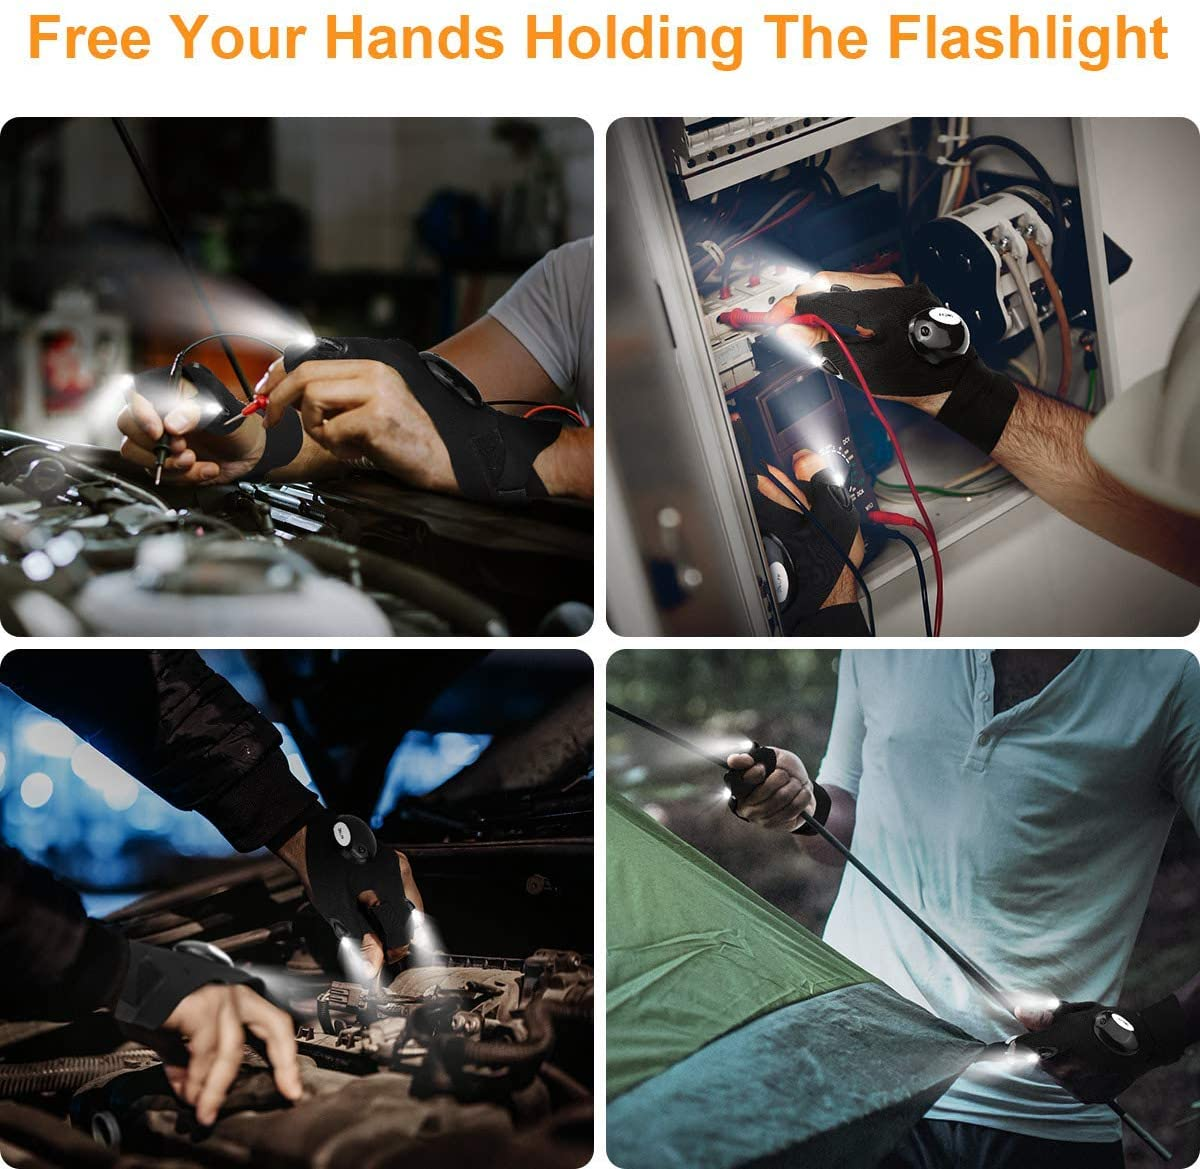 LED Flashlight Gloves, Gifts for Men Dad Husband Boyfriend, Hands Free Light Gadgets Tools for Night Fishing, Running, Camping, Car Repairing, Father's Day Gifts for Dad